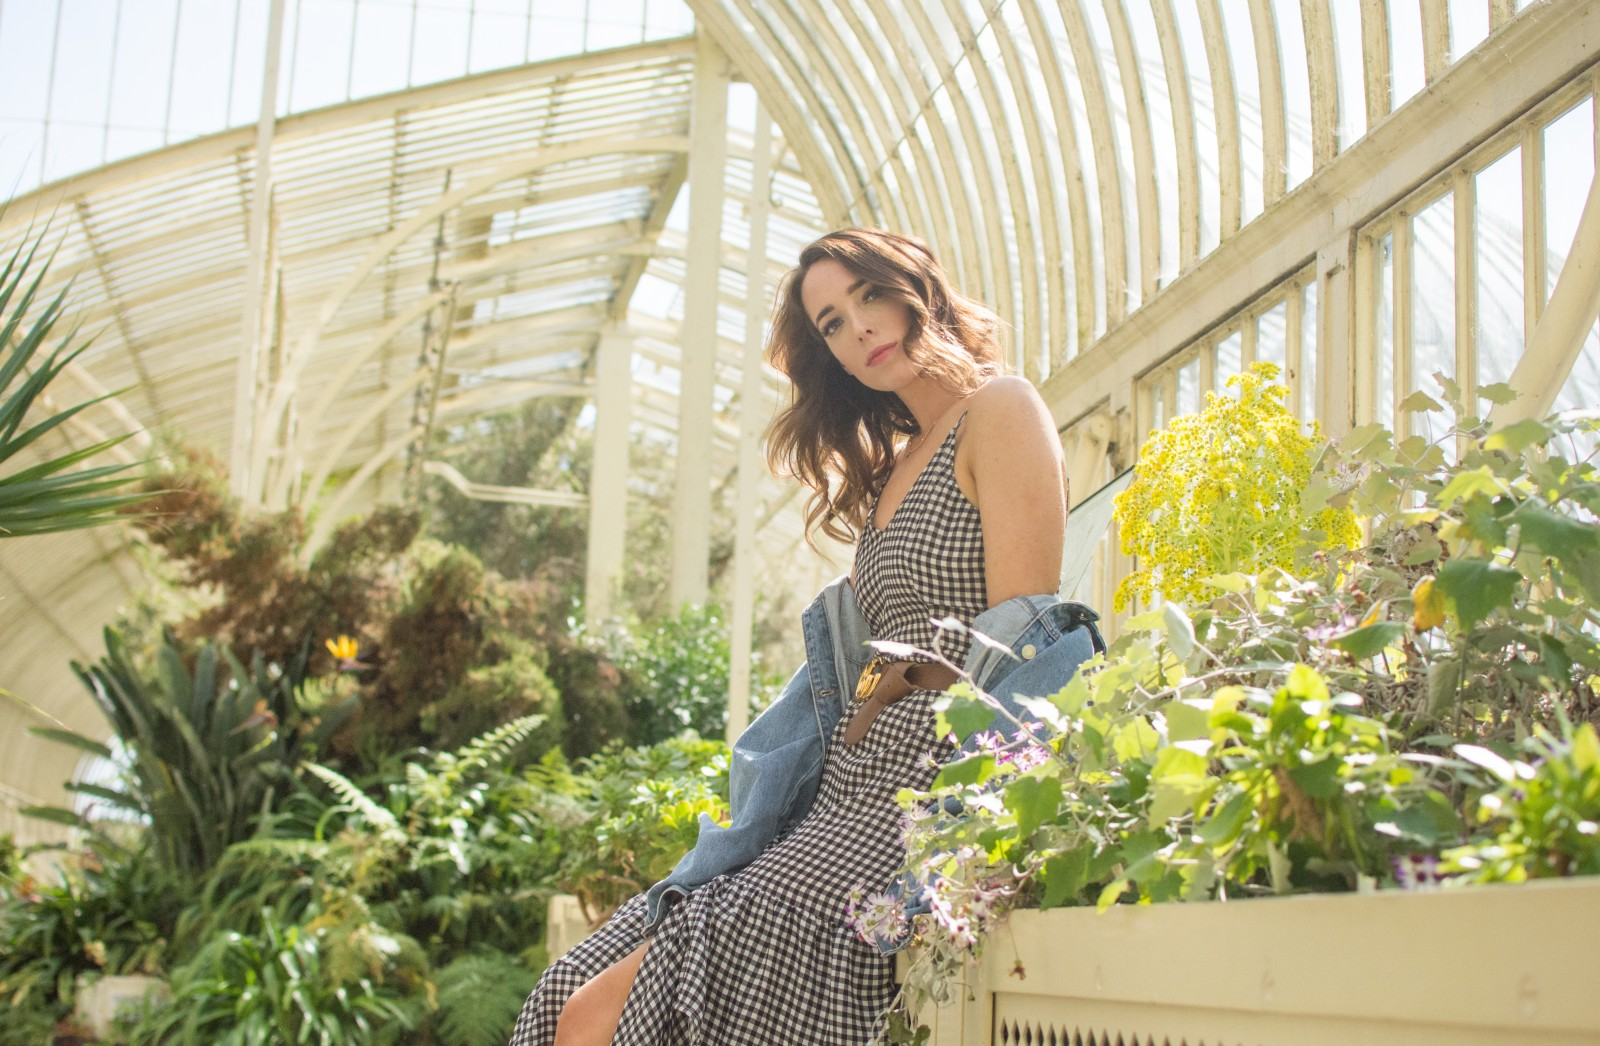 5 WAYS TO WEAR GINGHAM PRINT THIS SUMMER